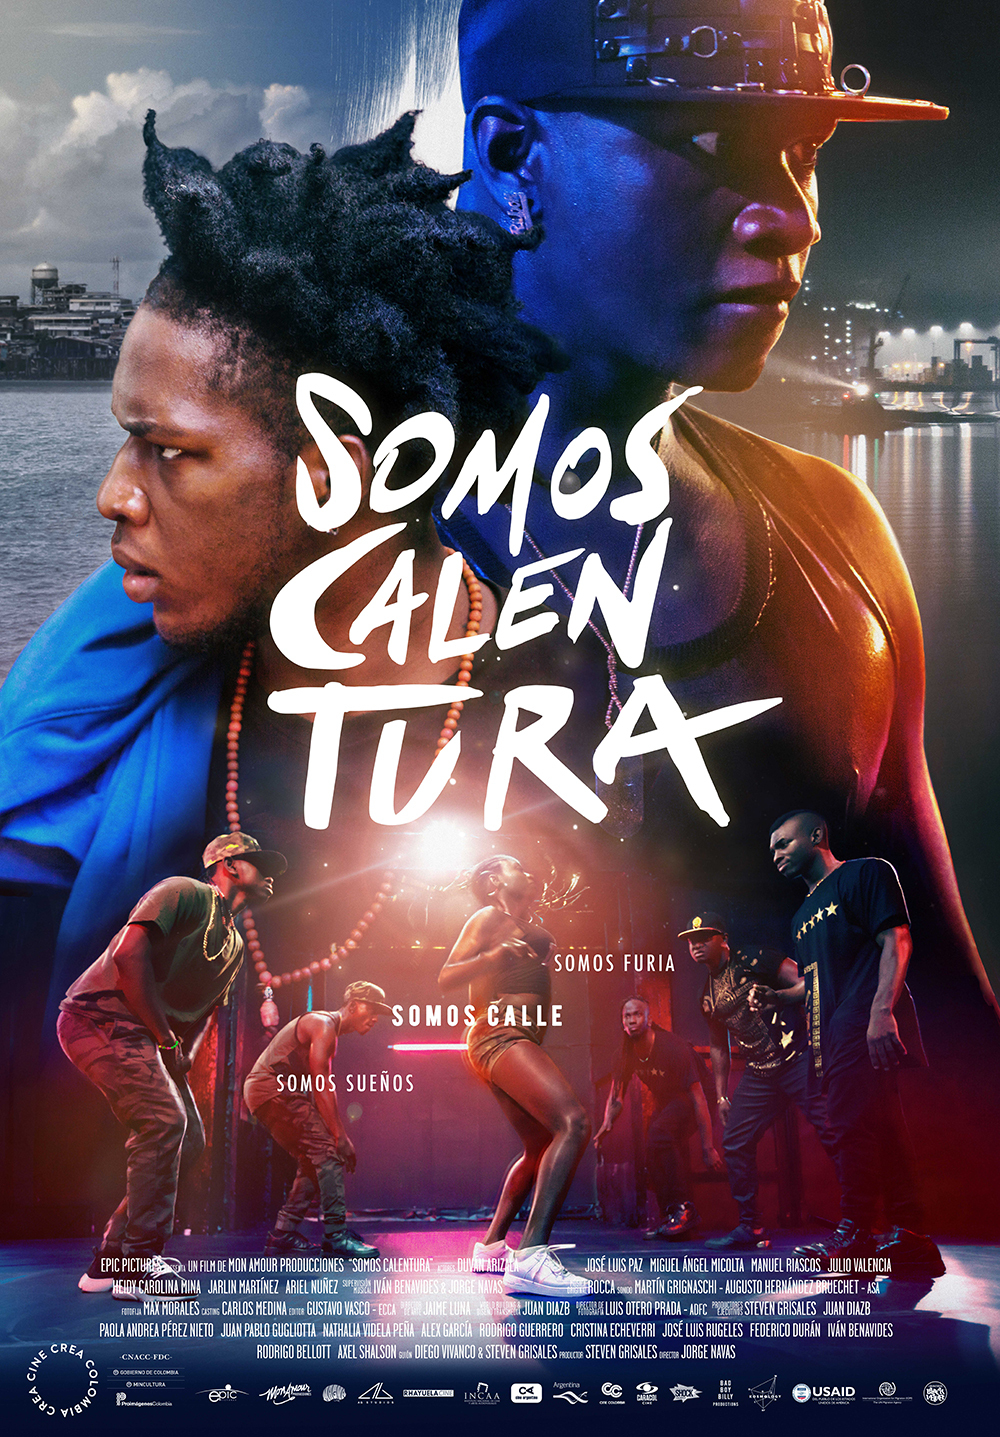 "Somos Calentura(We Are The Heat) - by Kathia WoodsLatin America hasn't always done an excellent job of representation when it comes to Afro-Latinos.Colombia whose two most notable celebrities are Shakira, and Sofia Vergara has the second largest Afro population in South America. So naturally when tourist travel to Colombia, they are somewhat surprised to notice that the average Colombian doesn't resemble those celebrities.""Somos Calentura"" is a film that helps chip away at the misrepresentation.This movie tells the story of a group of Afros Colombian friends. Harvey and his three friends are trying to navigate through the everyday struggle of living in Buenaventura. They come from humble beginnings with not many options.Music and dance provide an escape from the harsh reality of life. Dancing is a pivotal part of their escape.Like so many before them, dance could provide a legal escape out of poverty. So when the opportunity presented itself to enter a dance contest with a sizable purse, the boys jump on it.Director Jorge Navas does an excellent job of showing the struggles; however, it's not what ""Somos Calentura"" primary focus is. Crime and poverty are a reality in Buena Ventura, but it's not what defines this dance crew. They're brothers, brothers that may argue but have each other's back regardless of the situation.Harvey portrayed by first-time actor Duván Arizala is the family man. He has a wife and young child to provide for, unlike his companions he doesn't have the luxury to pursue dance for the sheer job. The stakes are higher for him. If this contest doesn't work out, he's relegated back to a life of meaningless jobs, for him this contest is a risky venture.Not having to face the same challenges his friends don't understand his unwillingness to jump at the chance to enter the contest; hence the road to the championship hits a few snags.This movie is entertaining and introduces us to some new and much-needed talent. I enjoyed the dance sequences in this film. You see the strong influence of ""Hip-Hop"" from the dances move to the colloquialisms; however, the music has elements of Salsa, Cumbia, and Chambeta to name a few.It was smart casting on Navas to find dancers that can act. This way the dance sequence shots are authentic and vibrant.There are many twists and turns to"